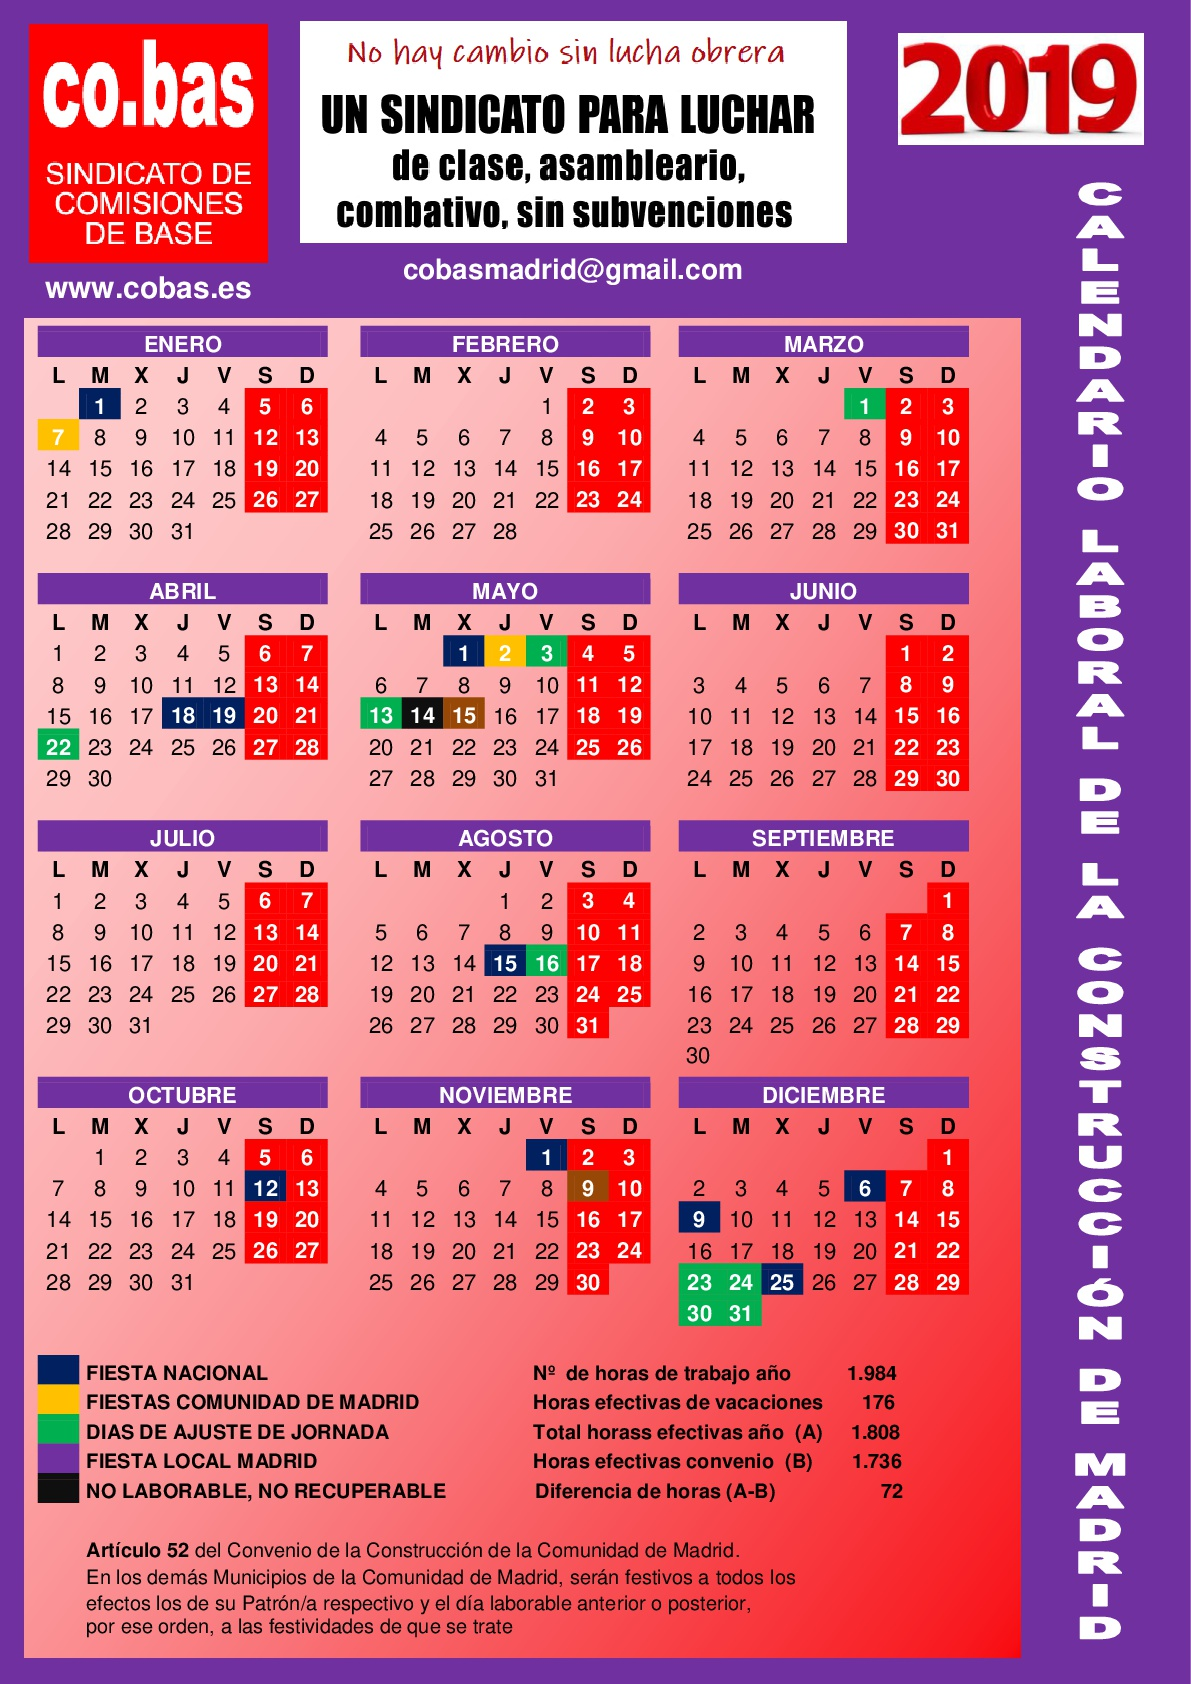 Calendario Laboral Comunidad De Madrid.Calendario Laboral 2019 De La Construccion De Madrid Co Bas Es